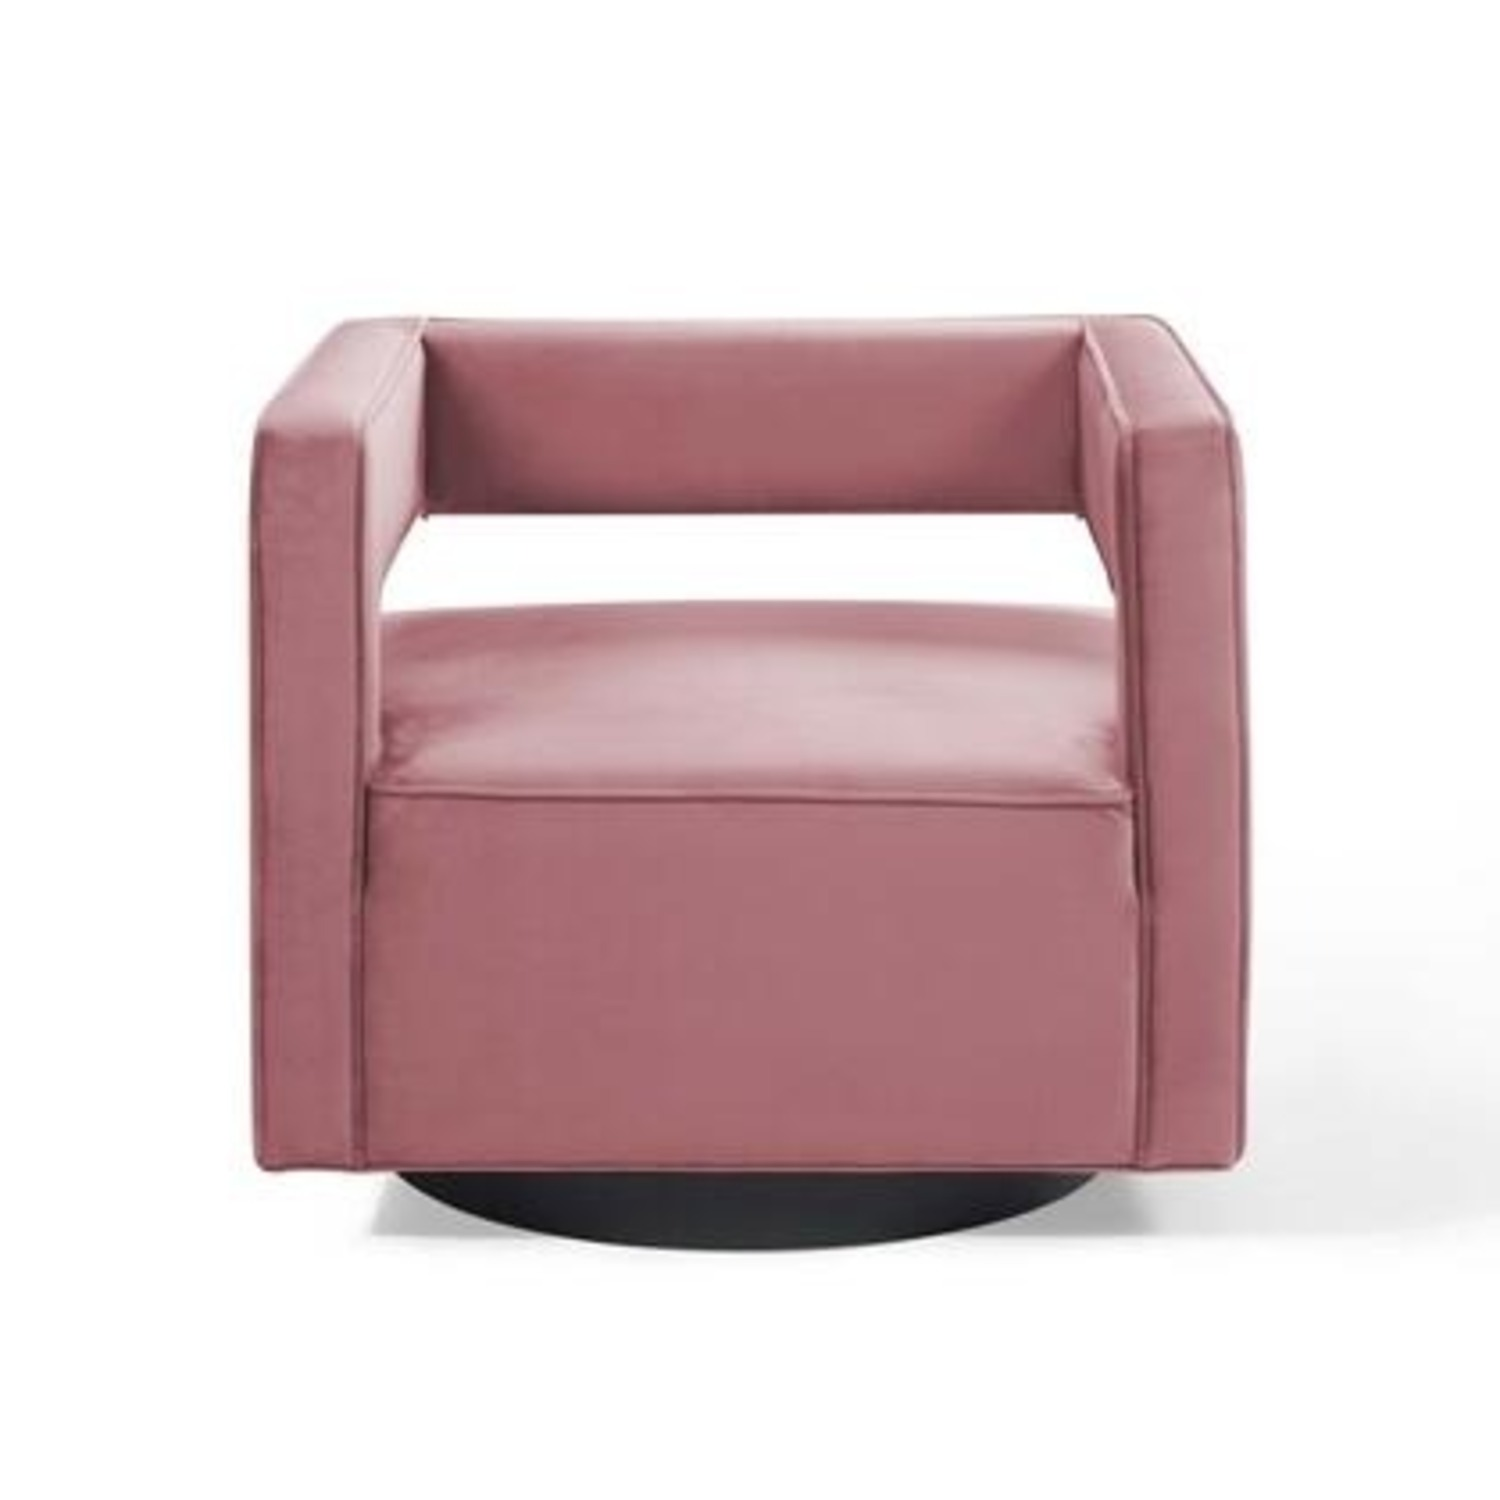 Armchair In Dusty Rose W/ Squared Cutaway Back - image-0